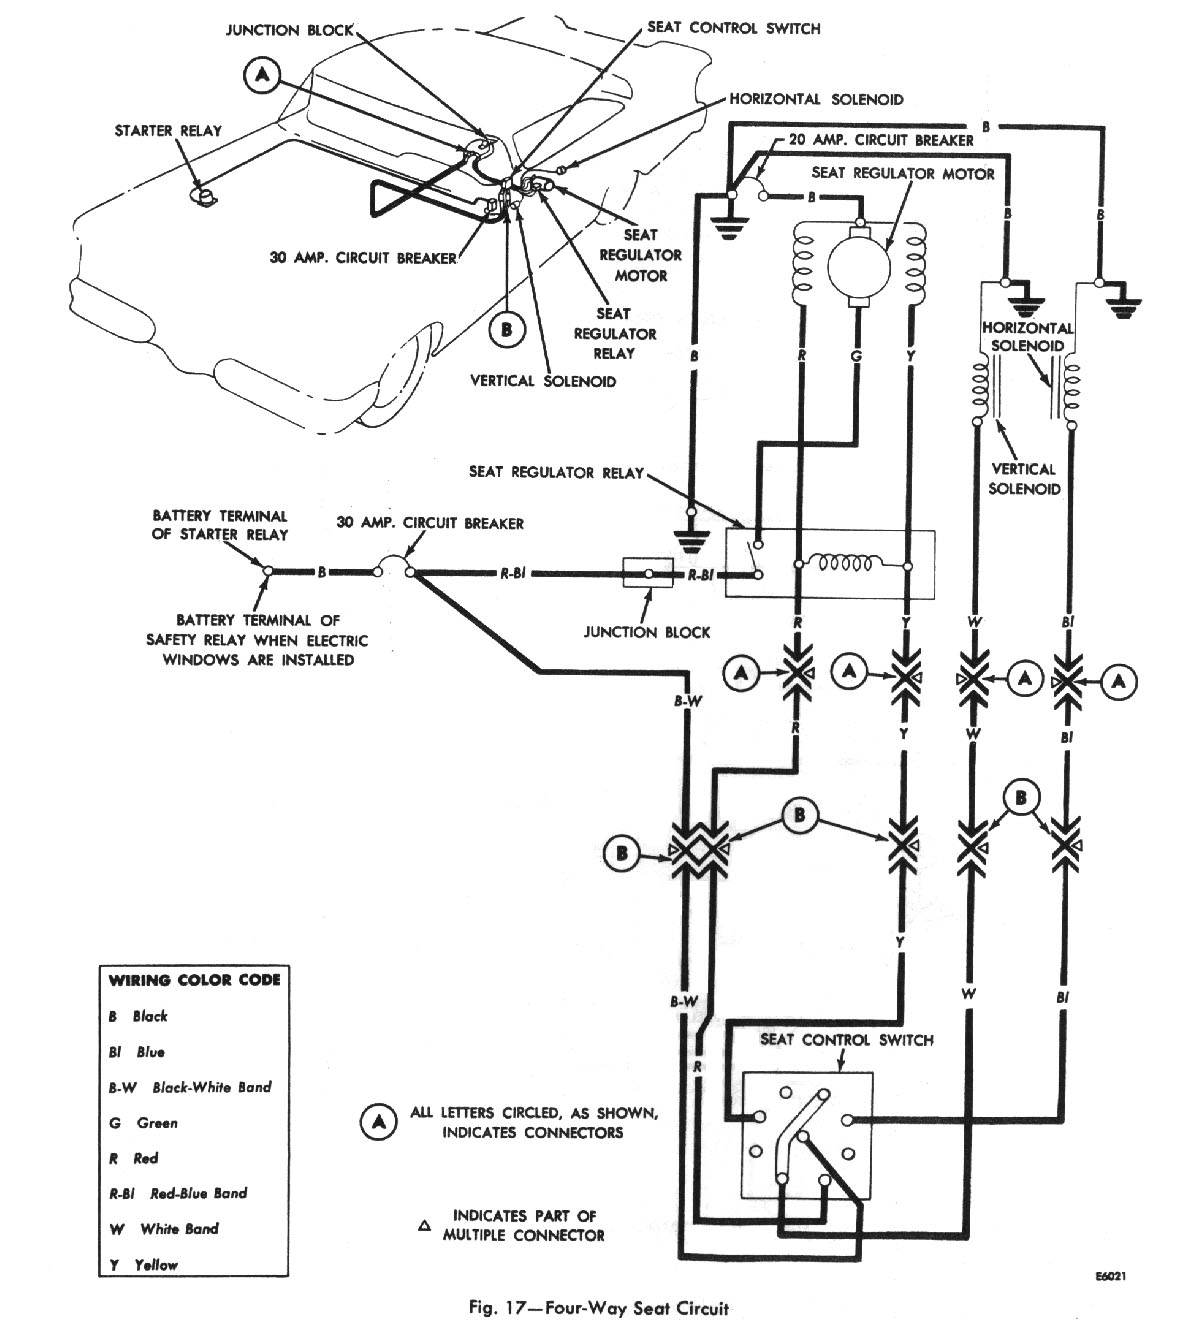 hight resolution of four way seat circuit wiring diagram